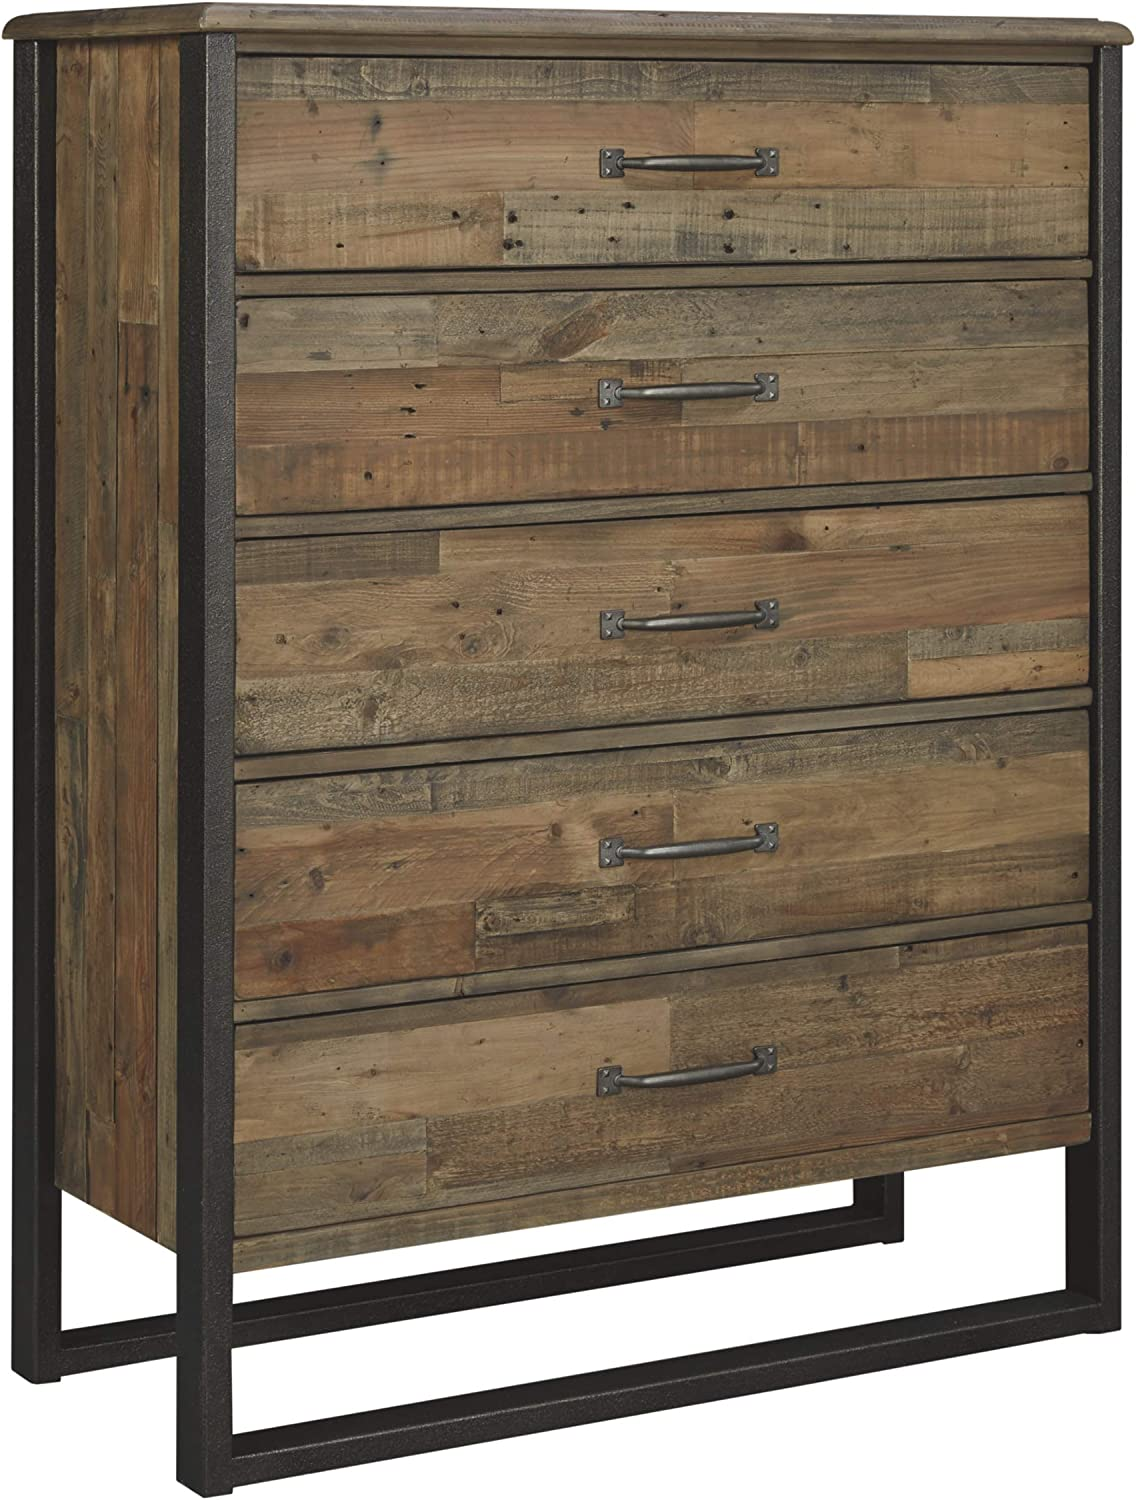 Ashley Furniture Signature Design - Sommerford Chest - Casual - 5 Drawers - Light Grayish Brown Finish Reclaimed Wood - Silver/Bronze Hardware/Legs